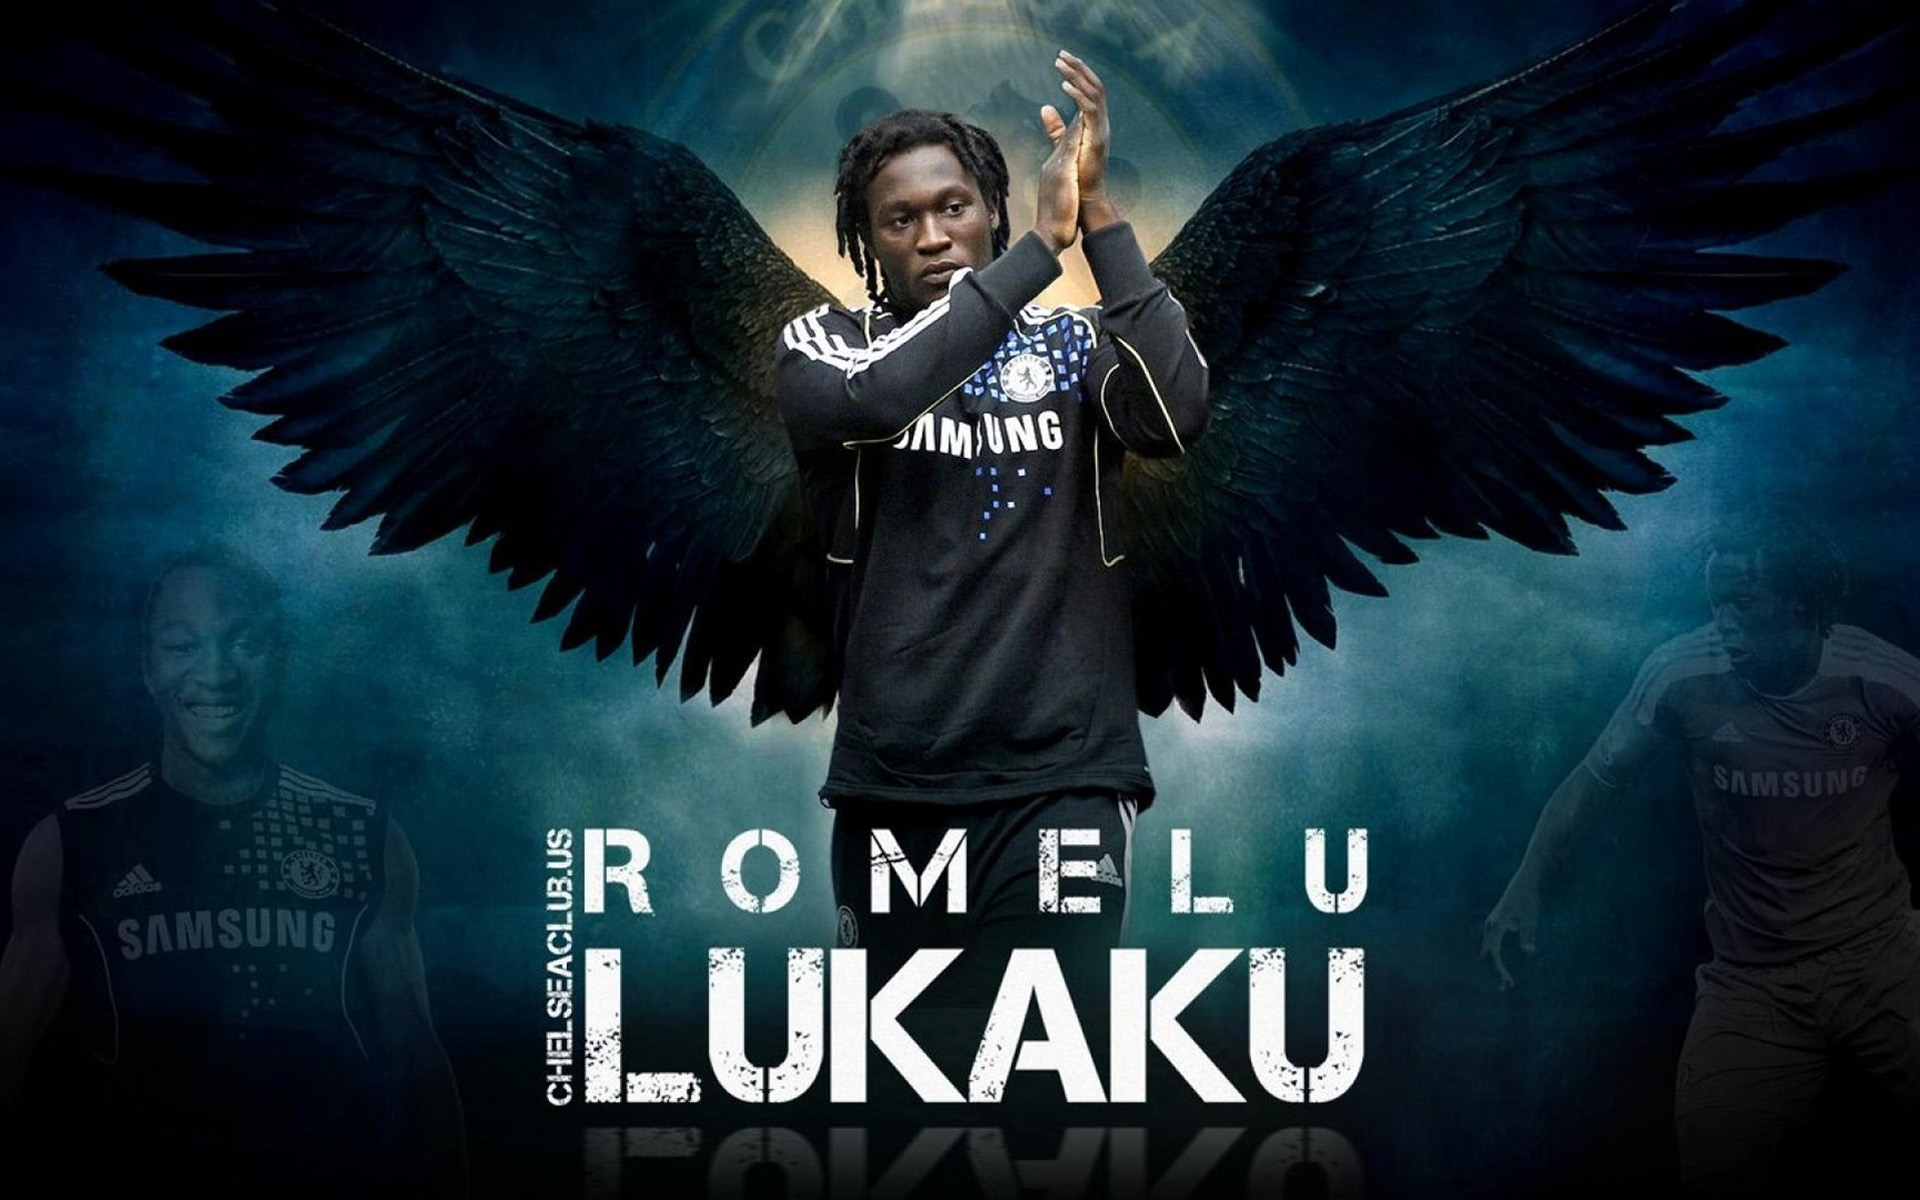 http://www.wallpapers-football.net/Wallpapers/Romelu-Lukaku-Wallpaper-6.jpg